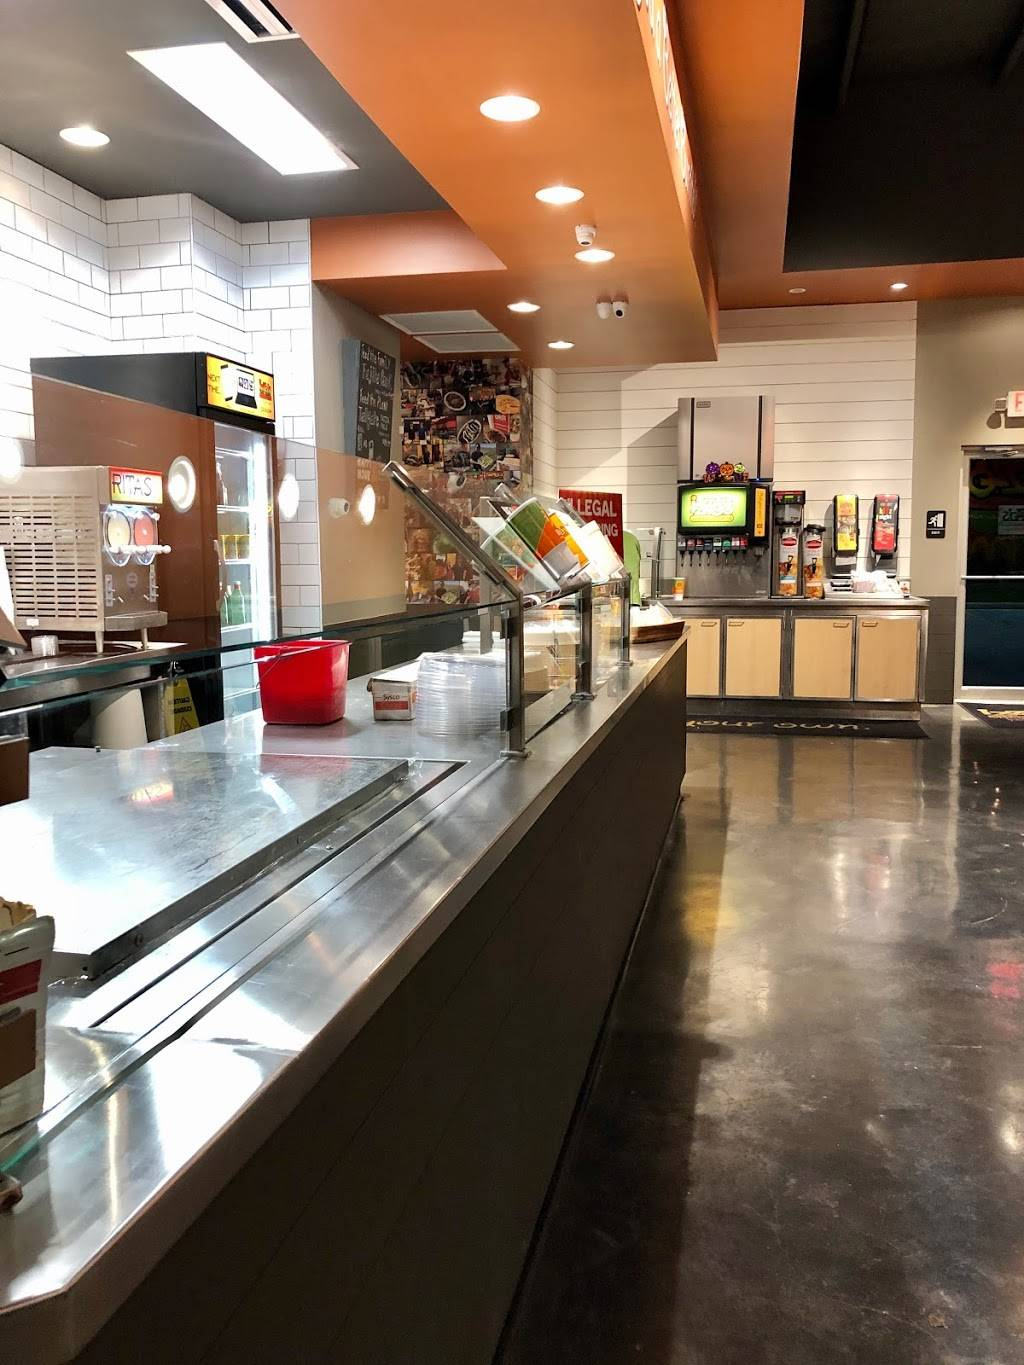 Izzos Illegal Burrito - Outfitters Dr., Gonzales | restaurant | 2520 W Outfitters Dr Ste C, Gonzales, LA 70737, USA | 2254246210 OR +1 225-424-6210